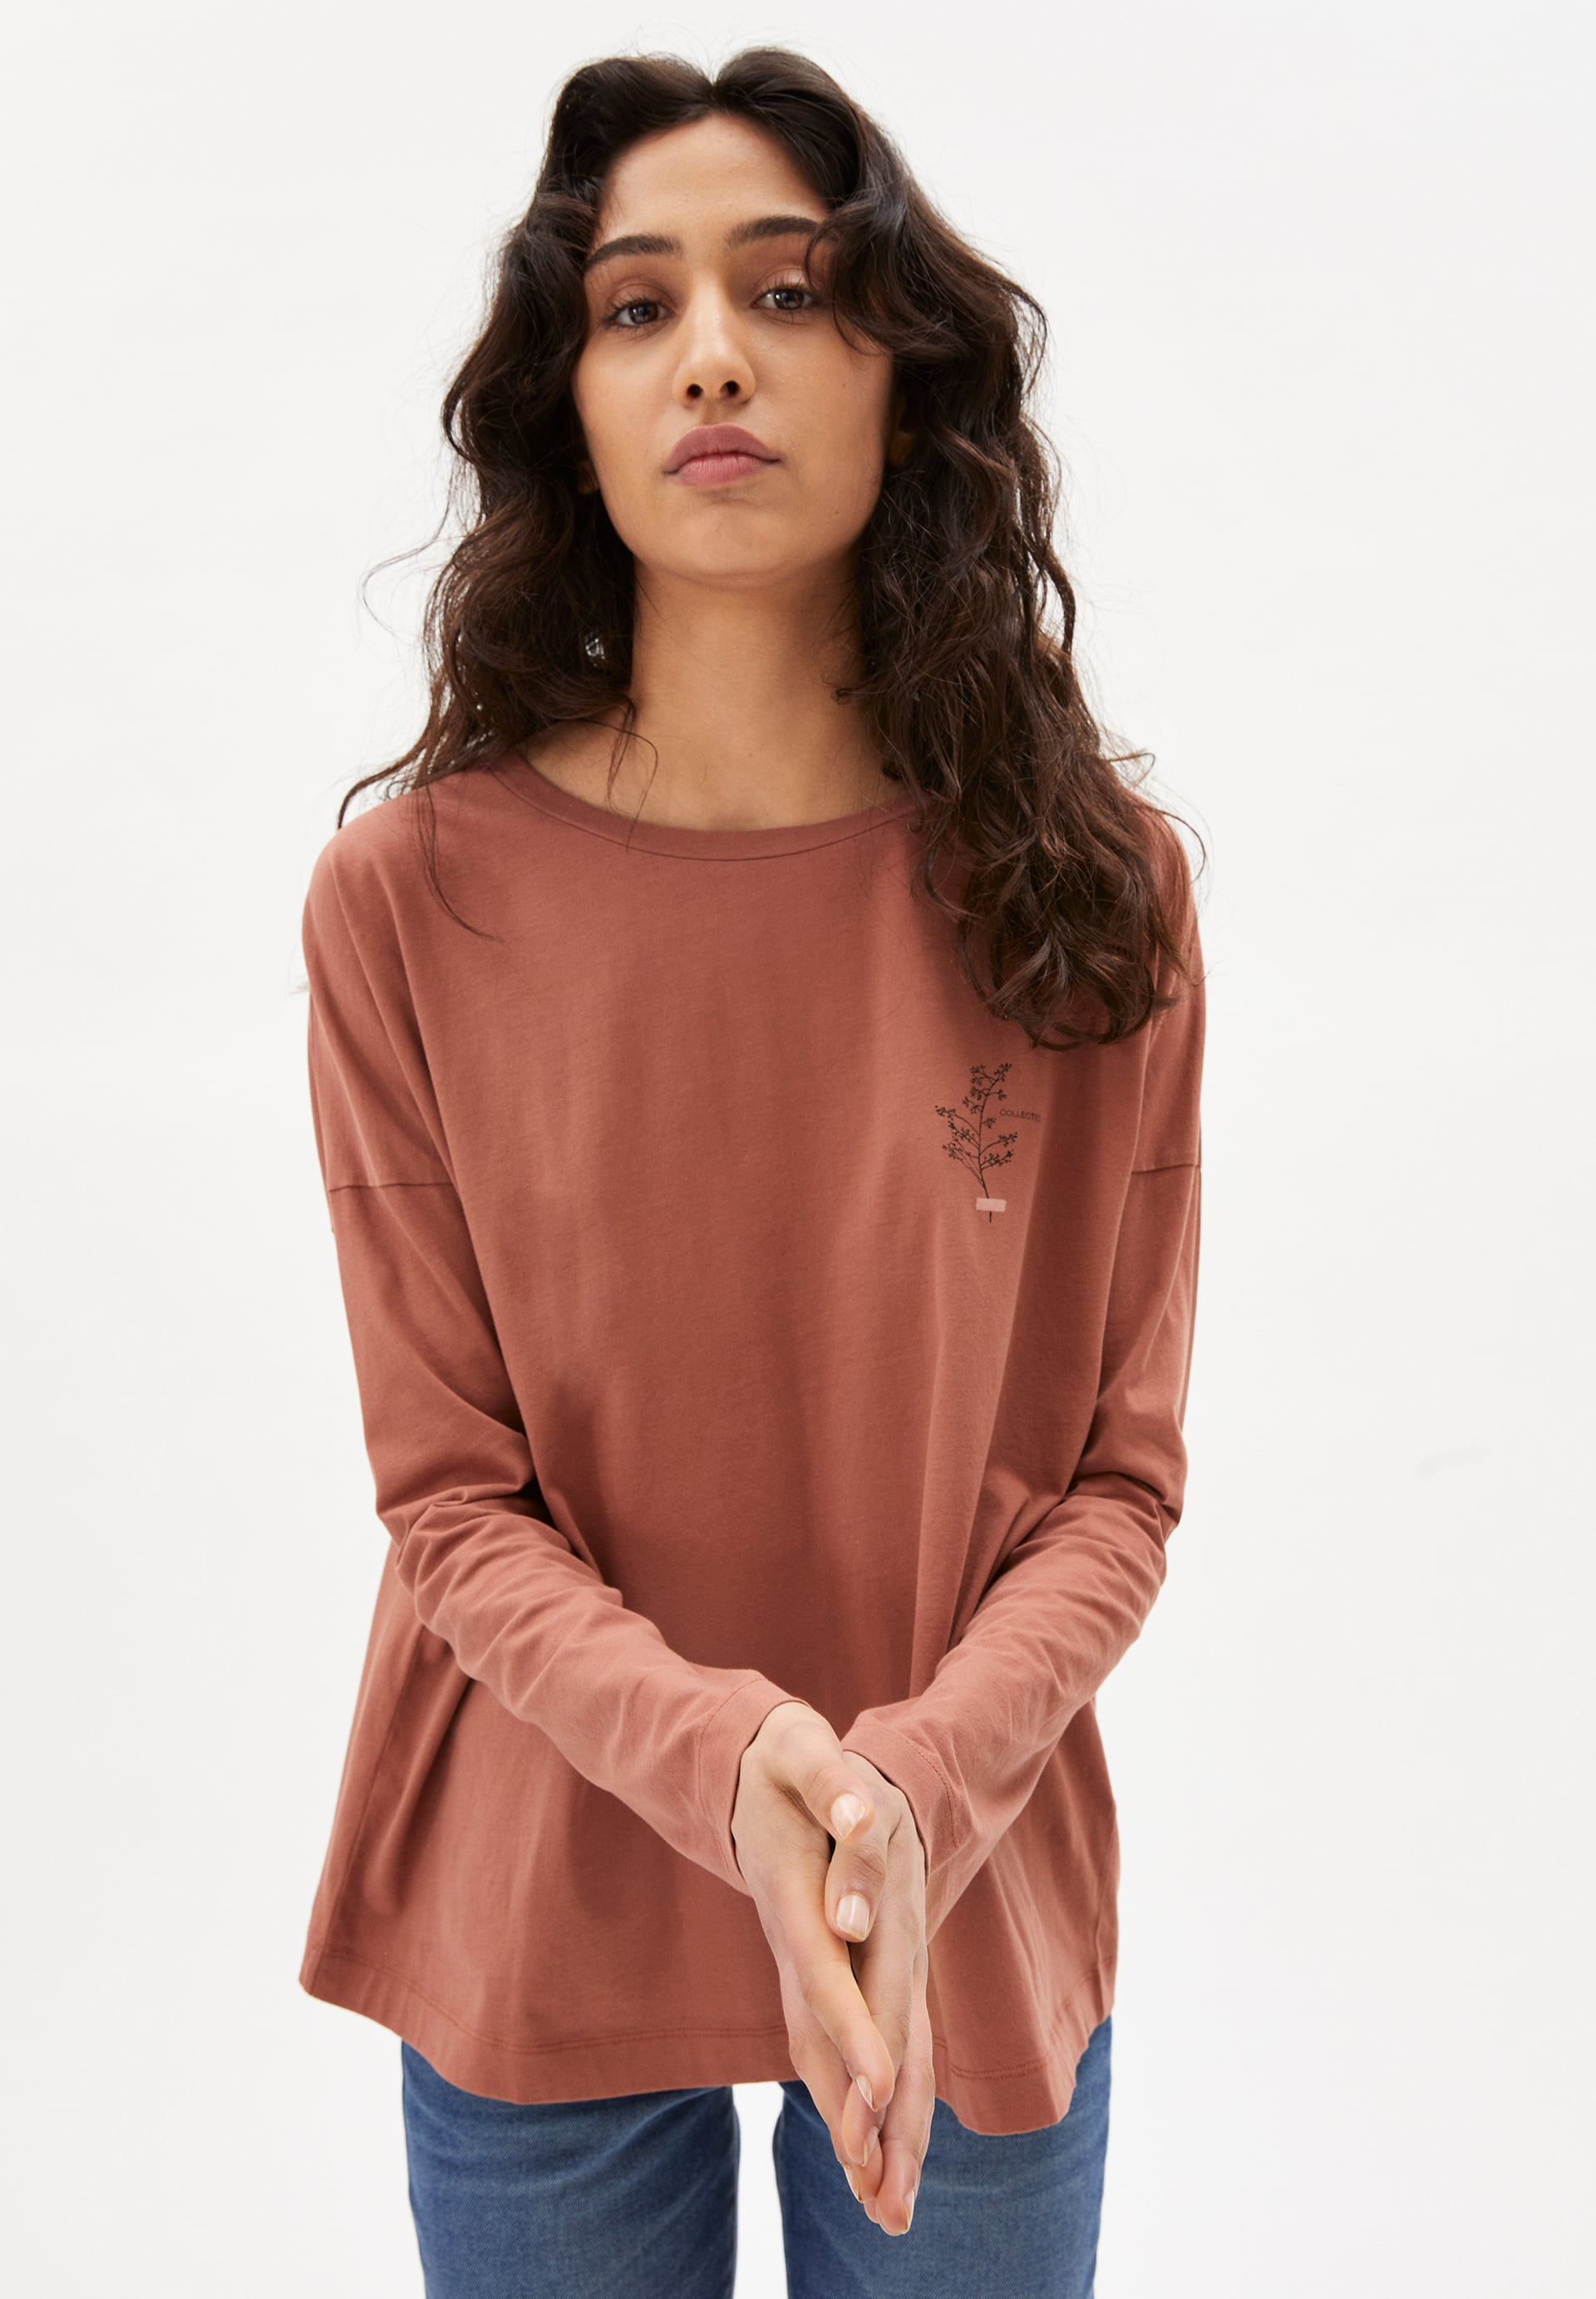 OLAA COLLECTED Longsleeve made of Organic Cotton